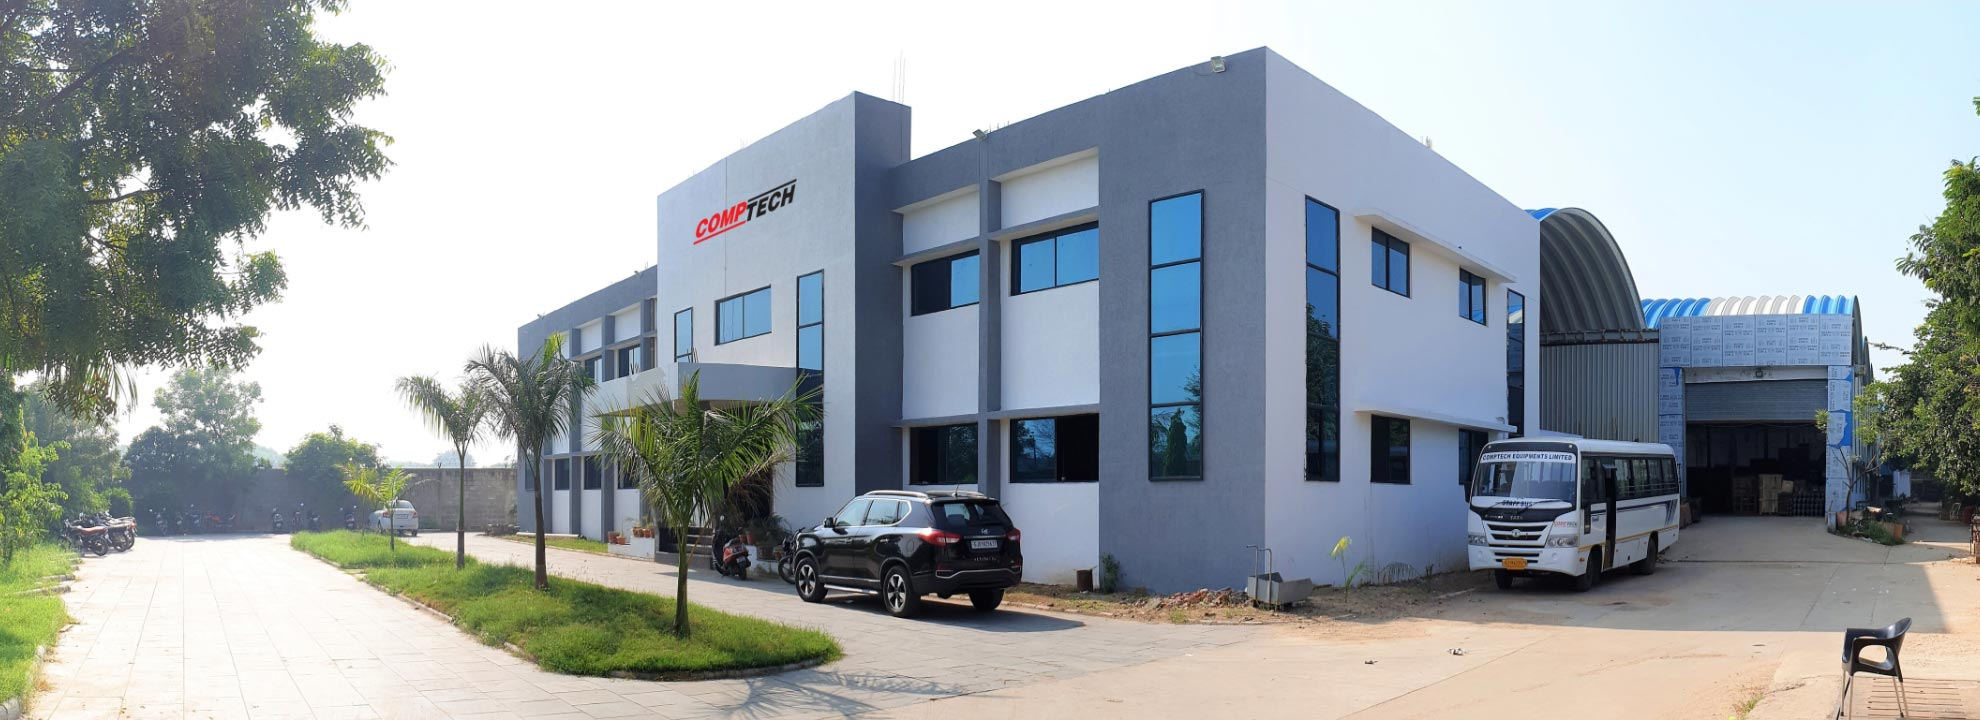 About Comptech